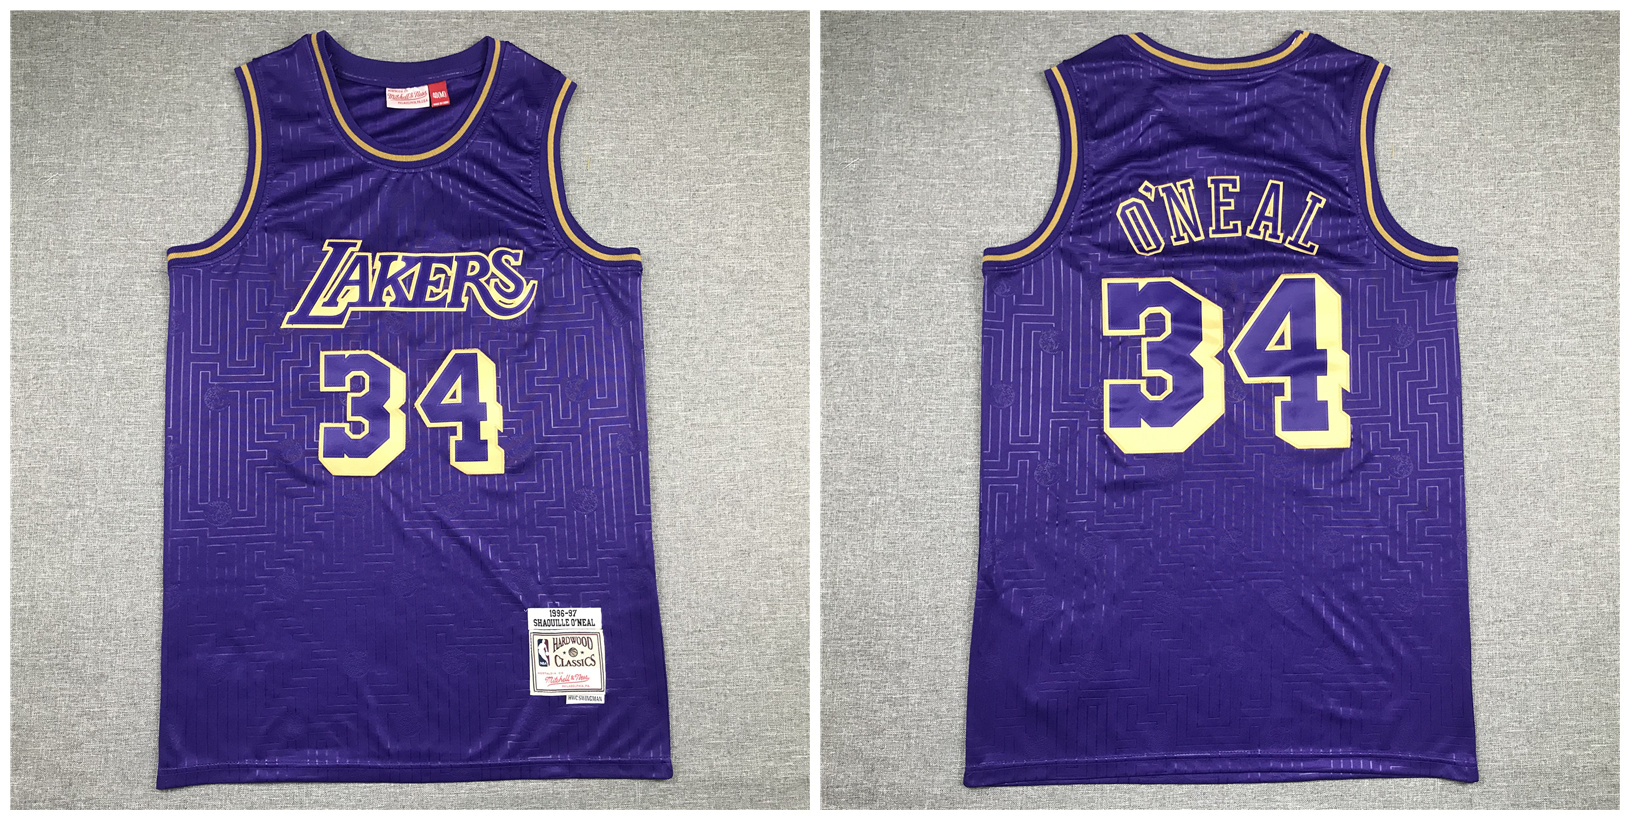 Lakers 34 Shaquille O'Neal Purple 1996-97 Hardwood Classics Jersey